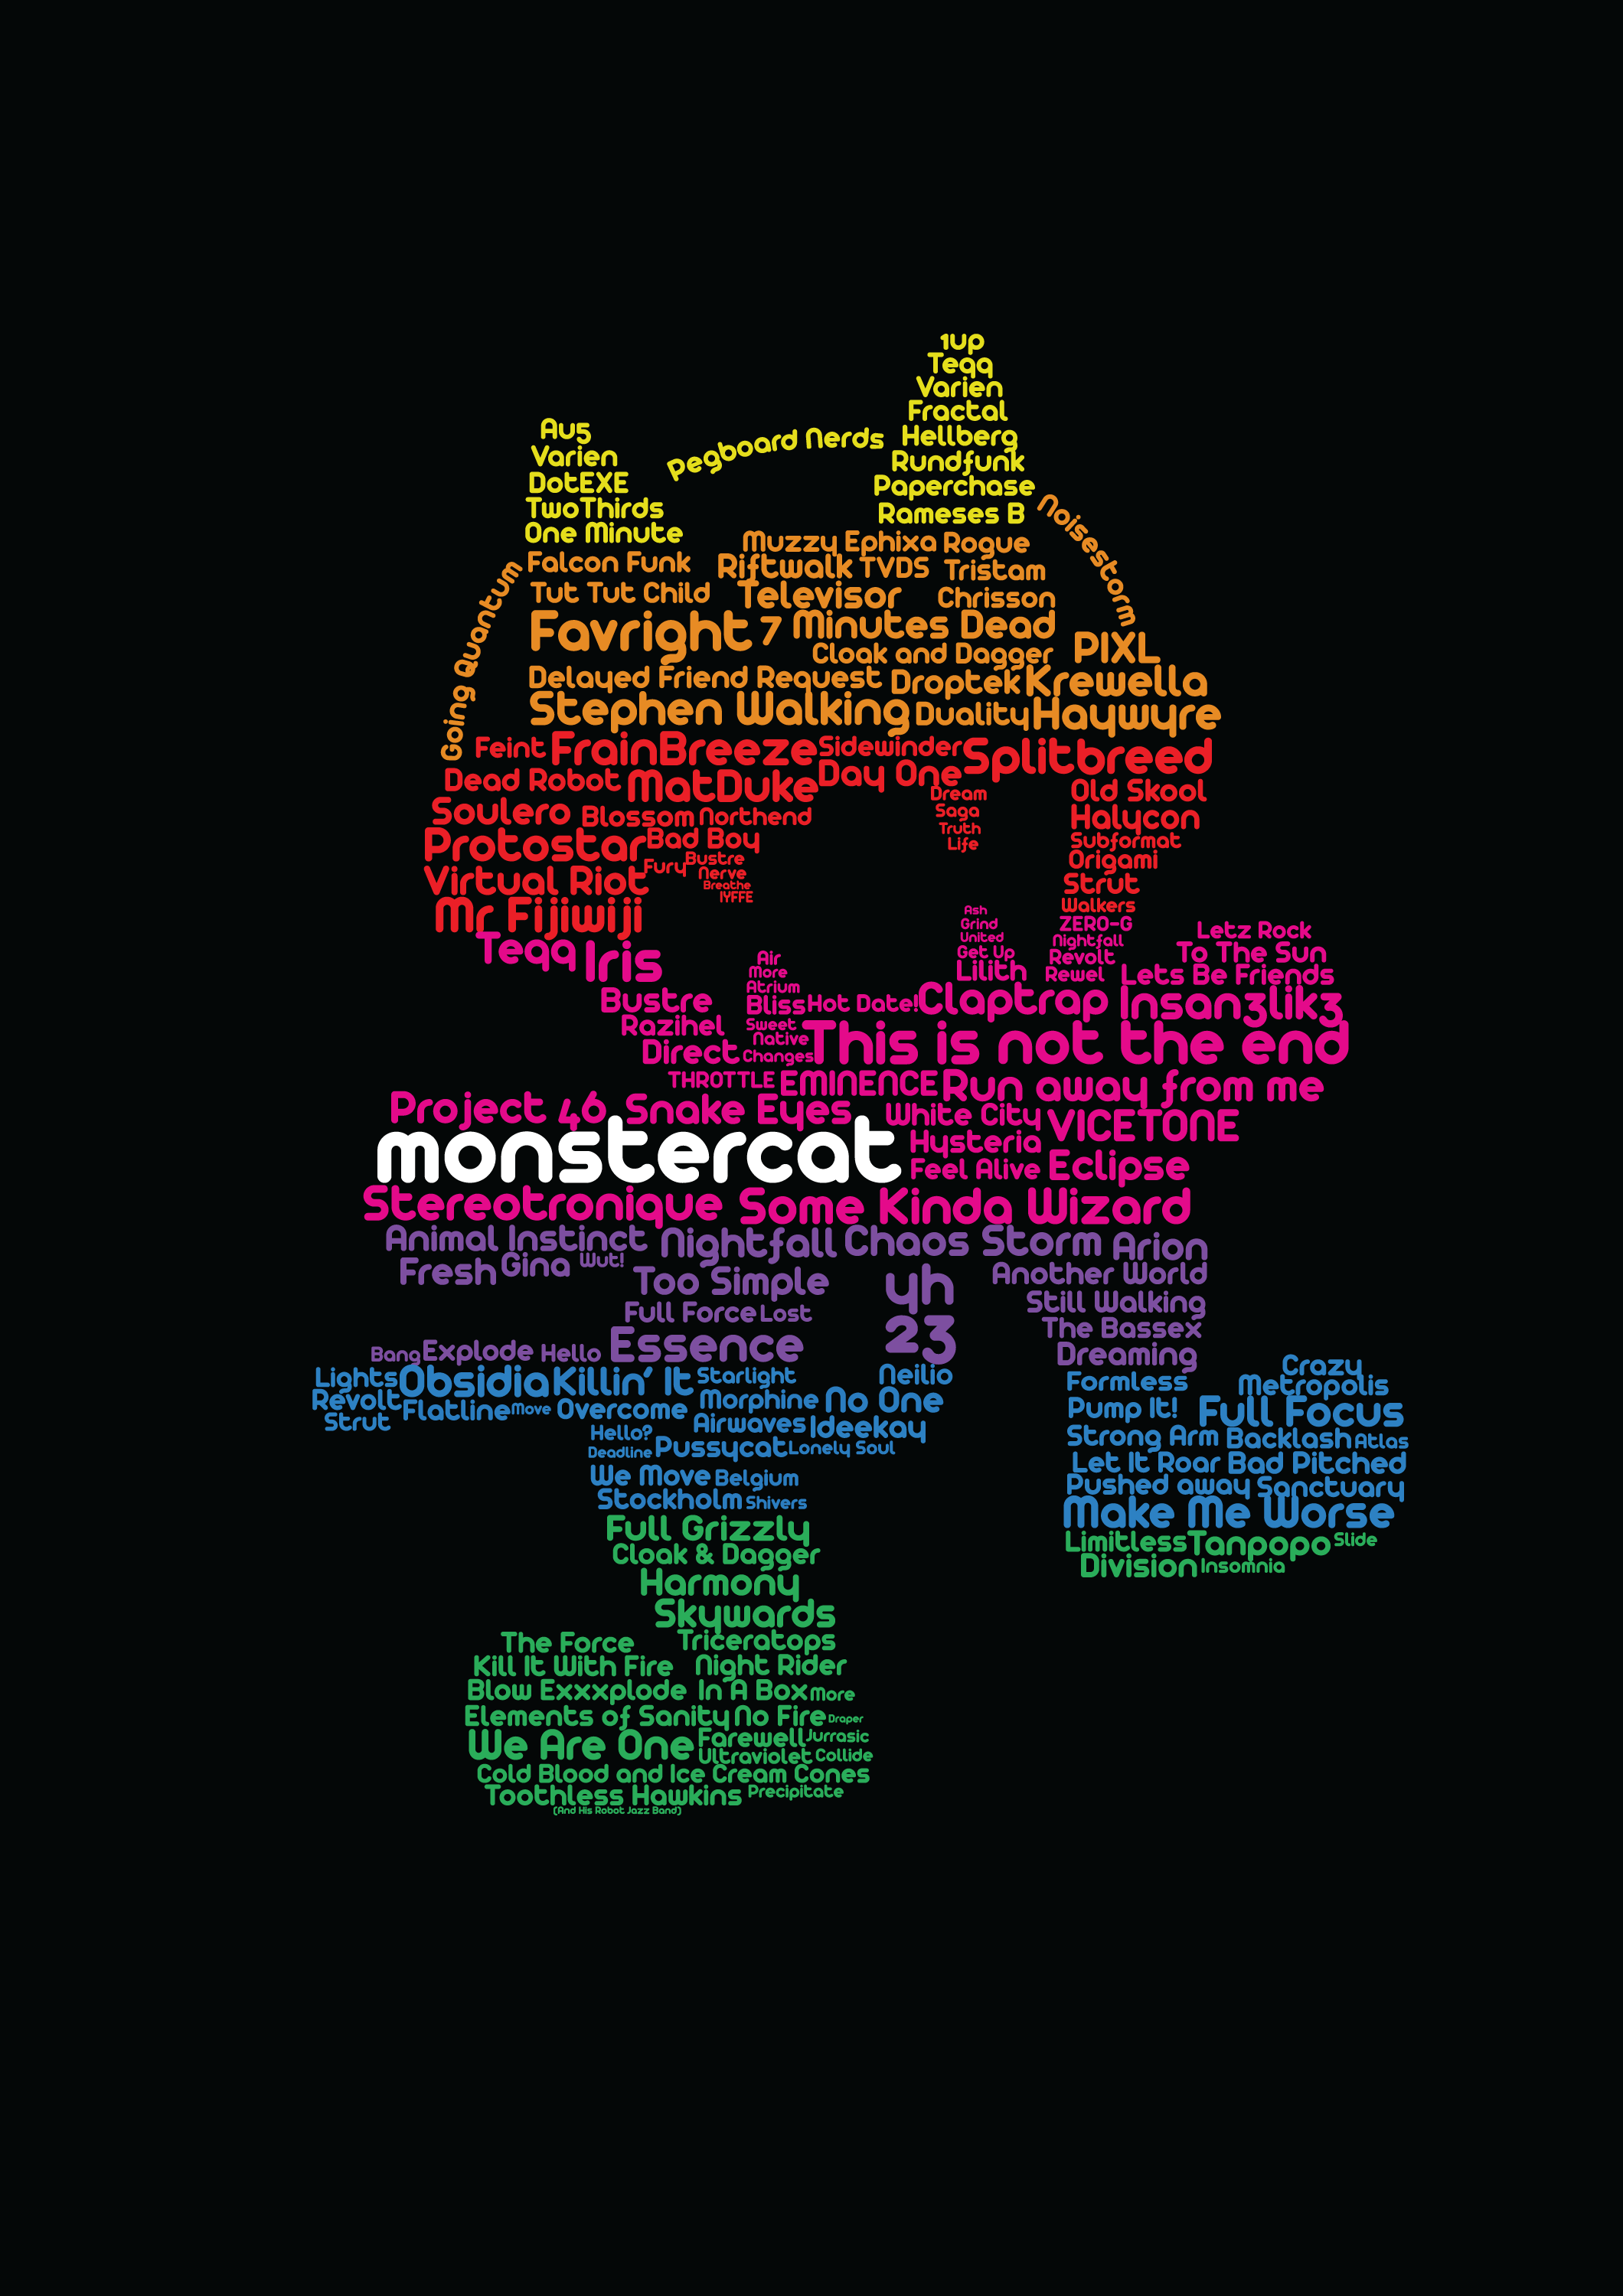 Wallpaper iphone edm - Do You Love Monstercat Lets Listen And Feel It